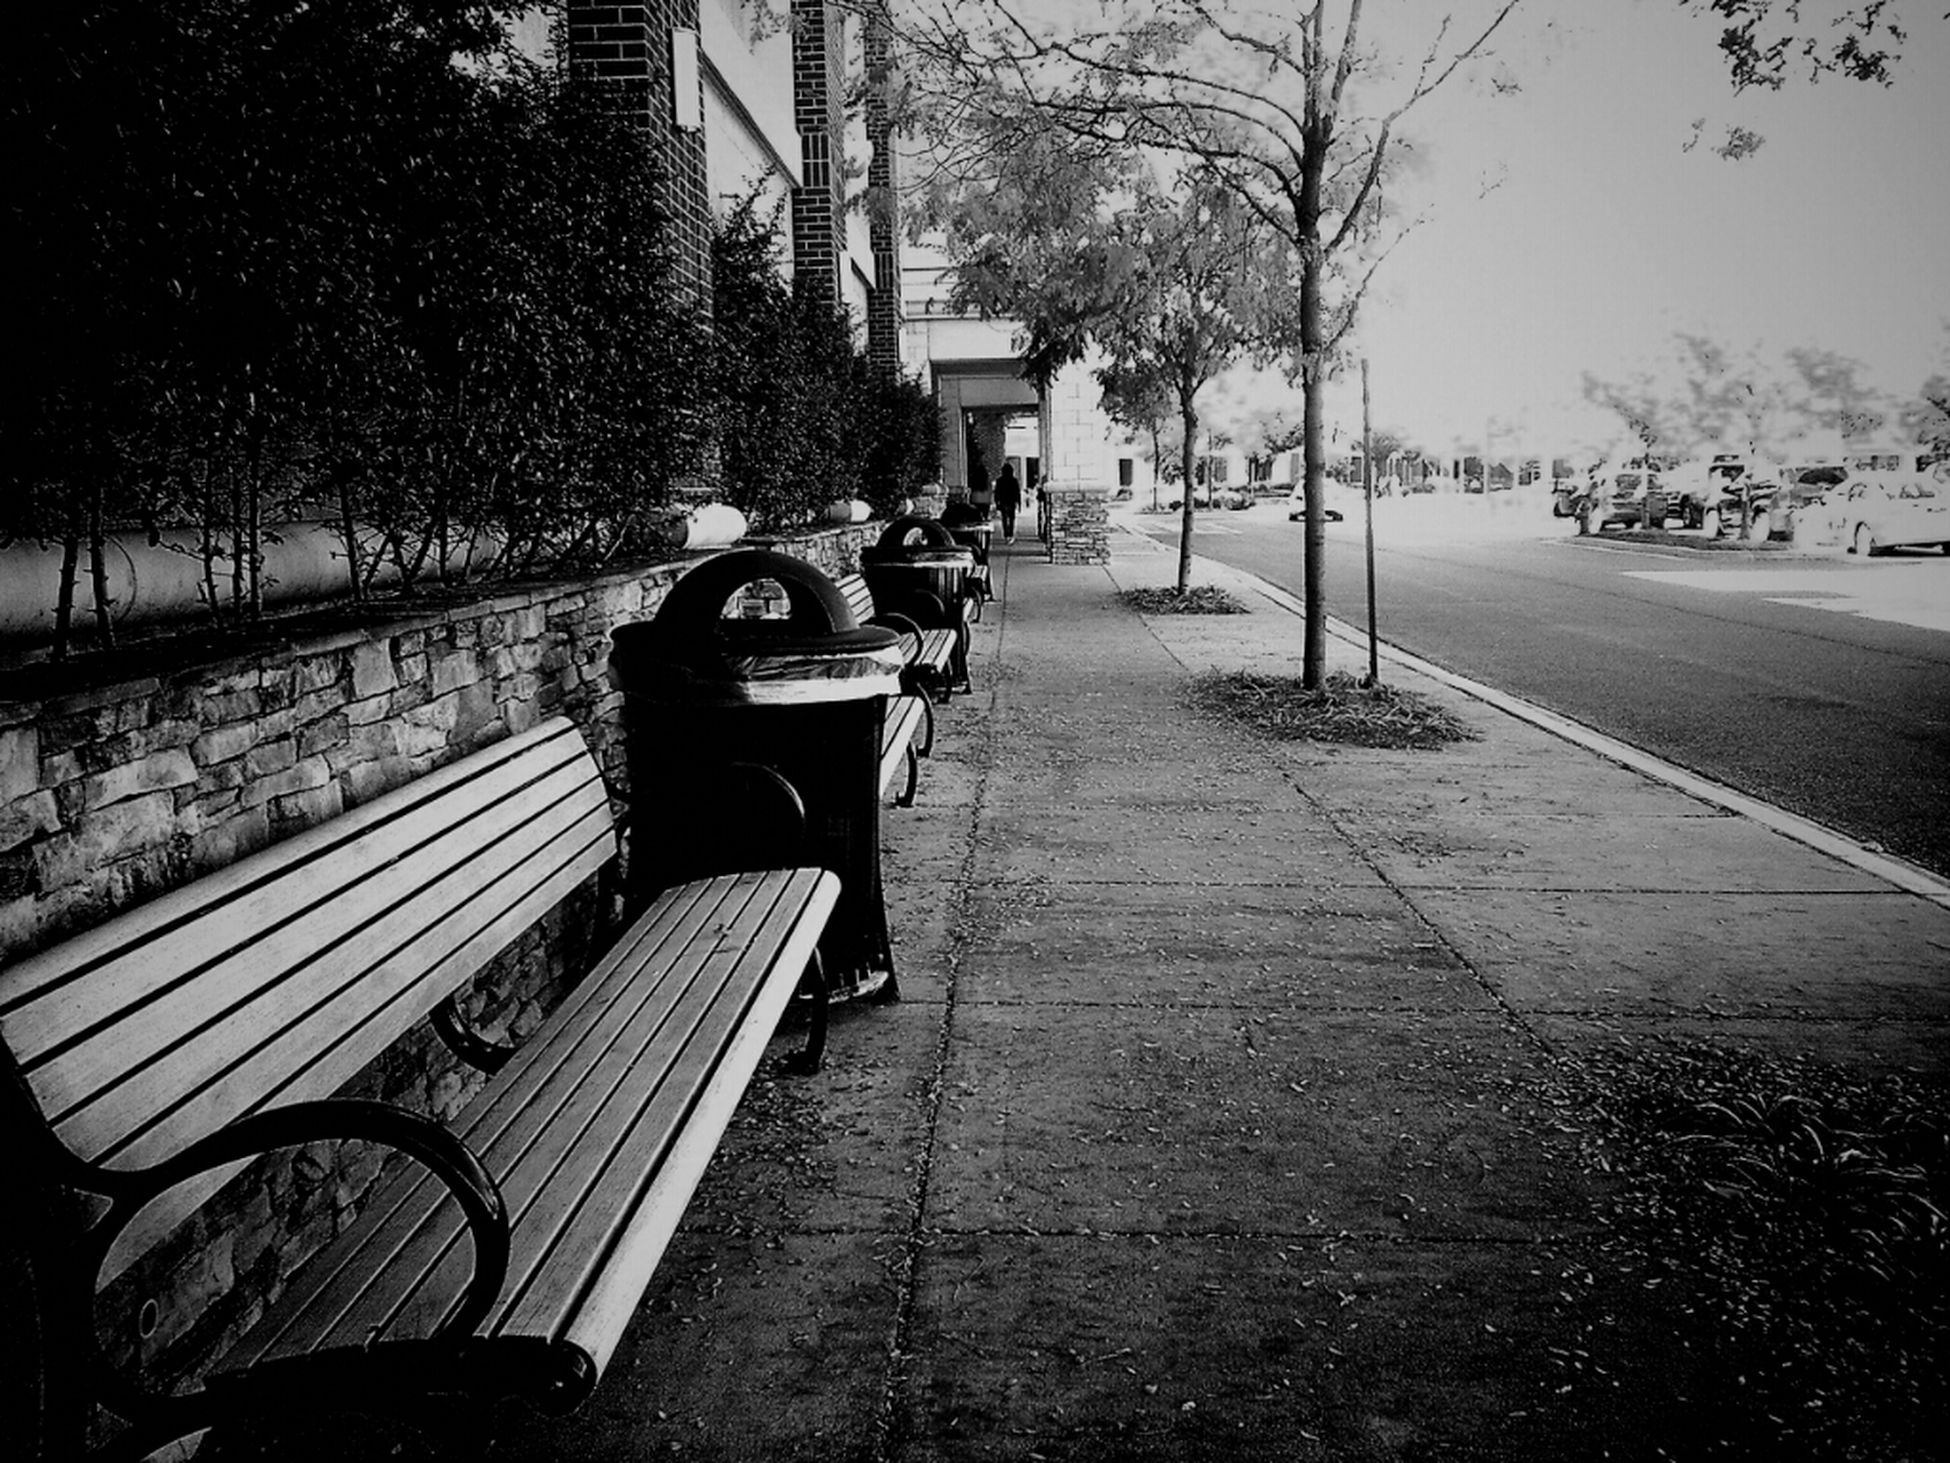 The Fall-setto #mobilephotography Blackandwhite Andrography WeAreJuxt.com Droidography Andrographer Urban Autumn Scenes